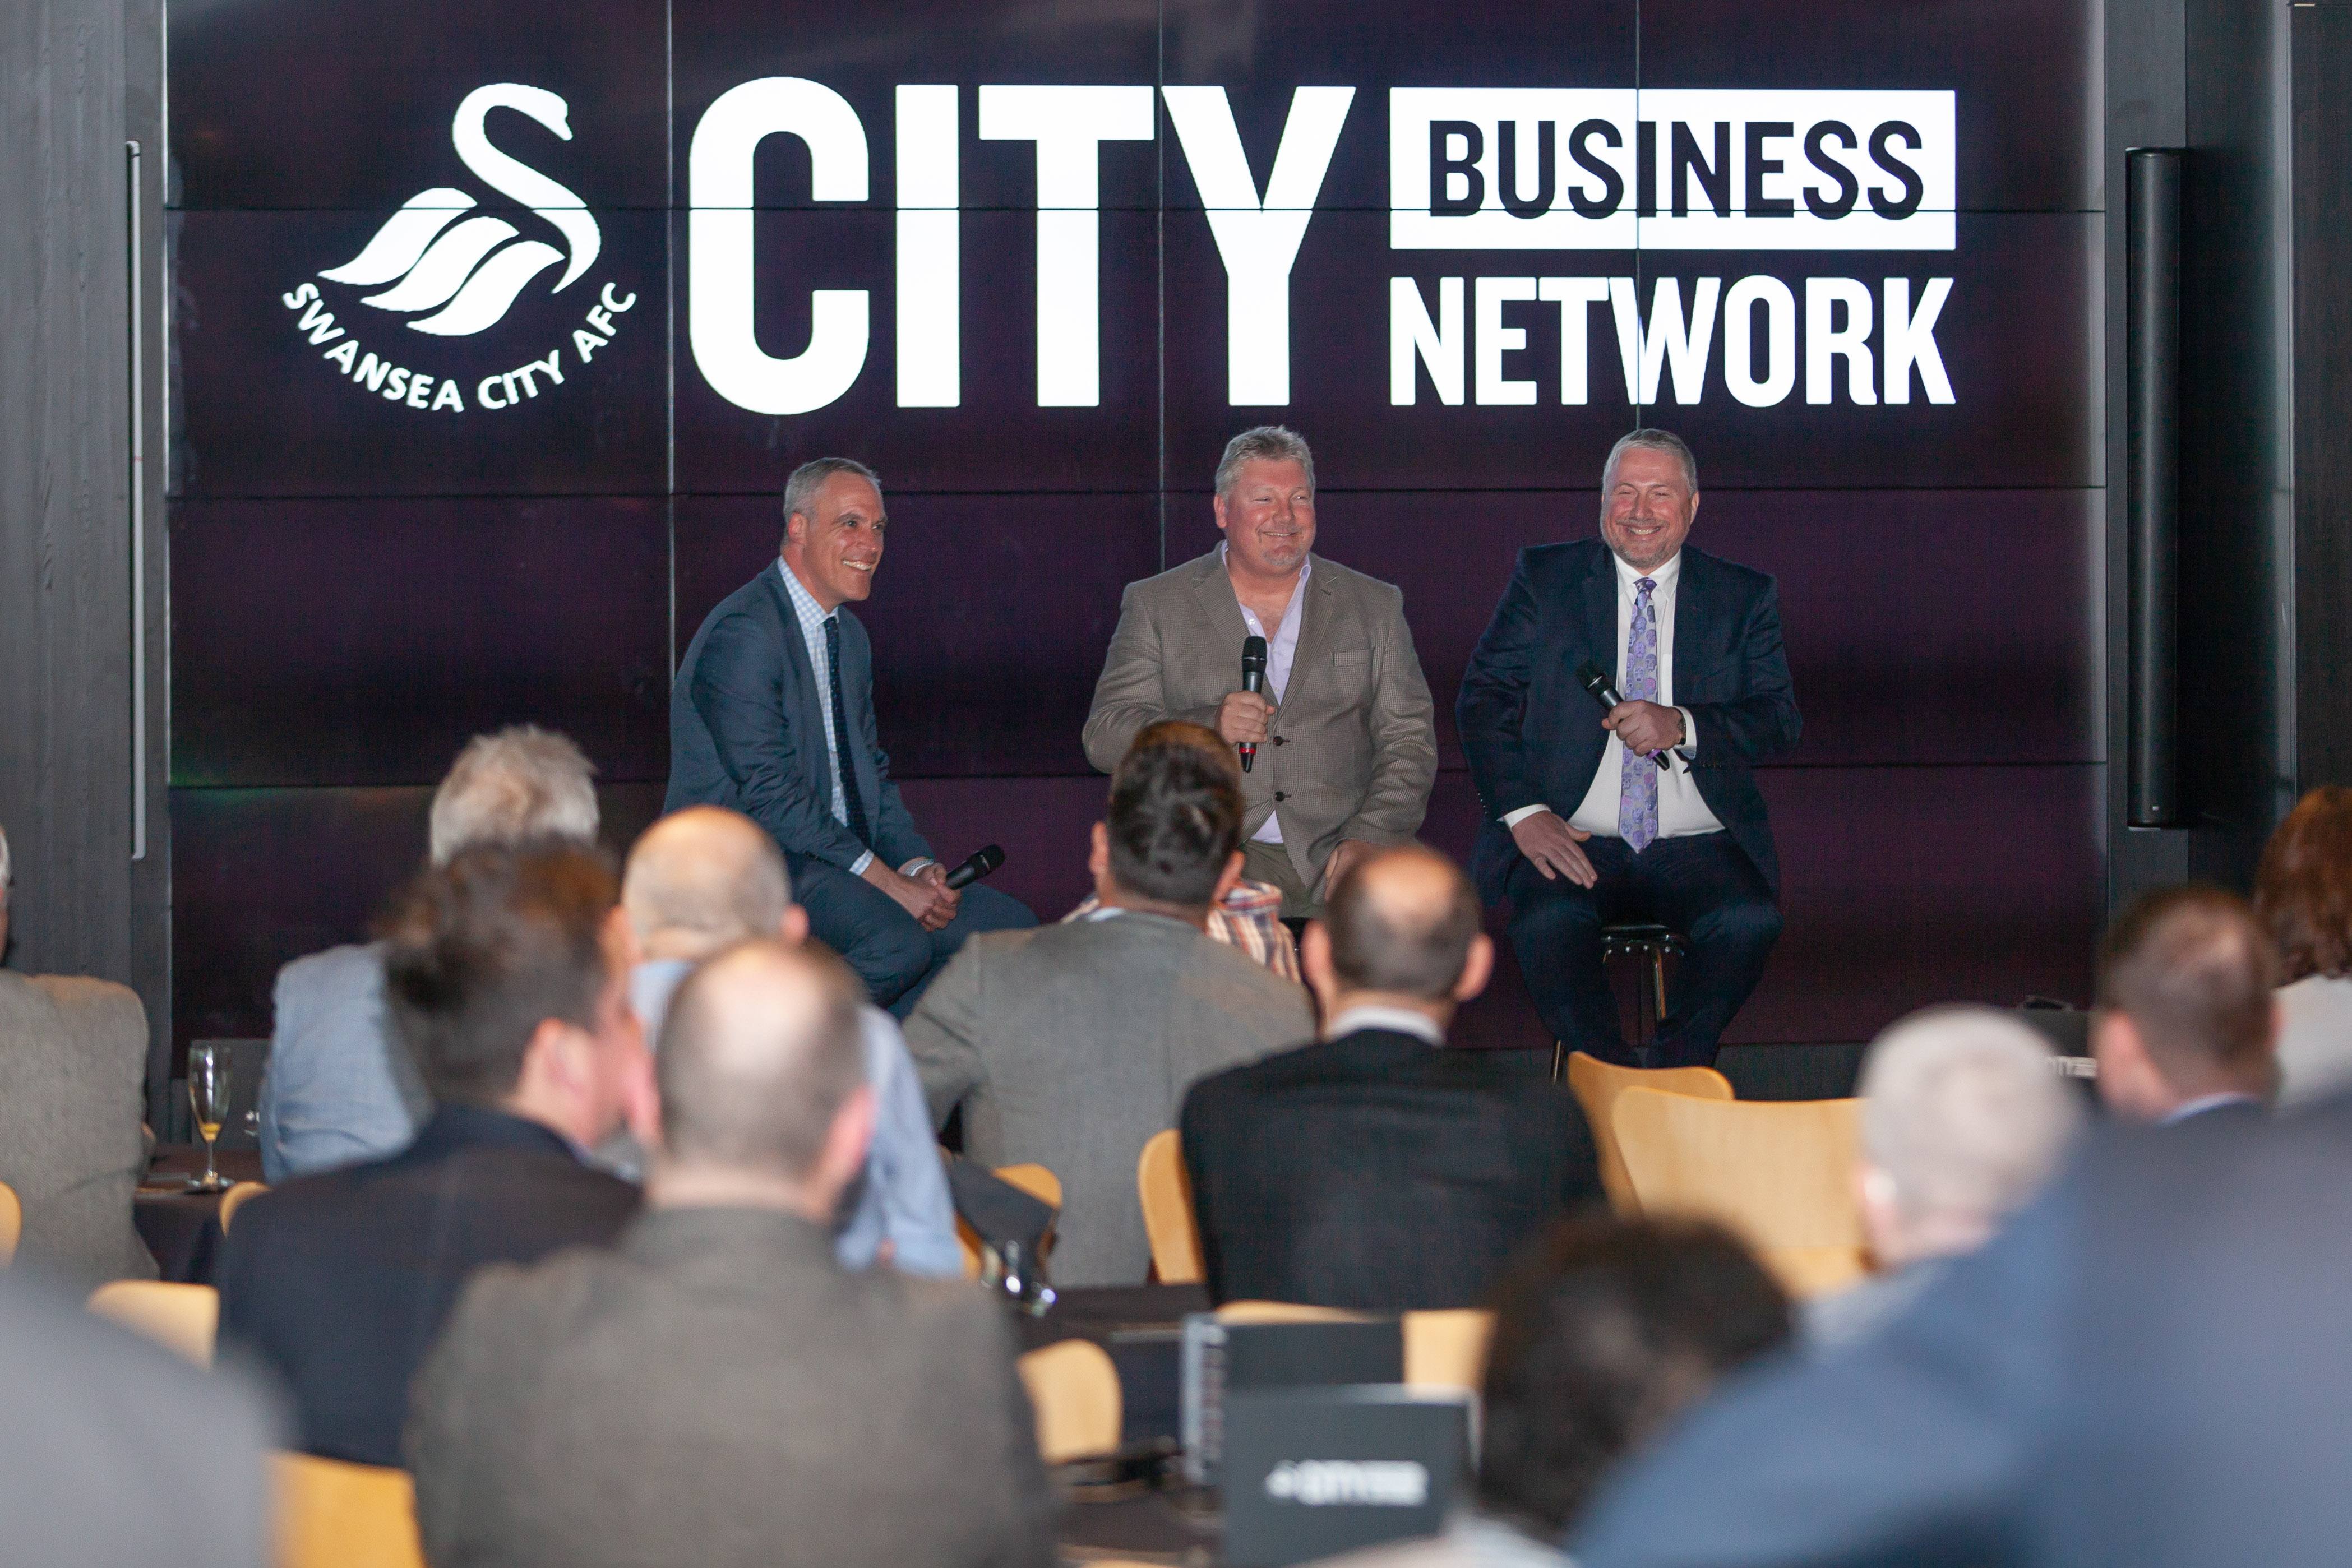 e9710d1ebde220 Leading regional law firm Peter Lynn and Partners have helped Swansea City  FC launch their new networking group – City Business Network (CBN).